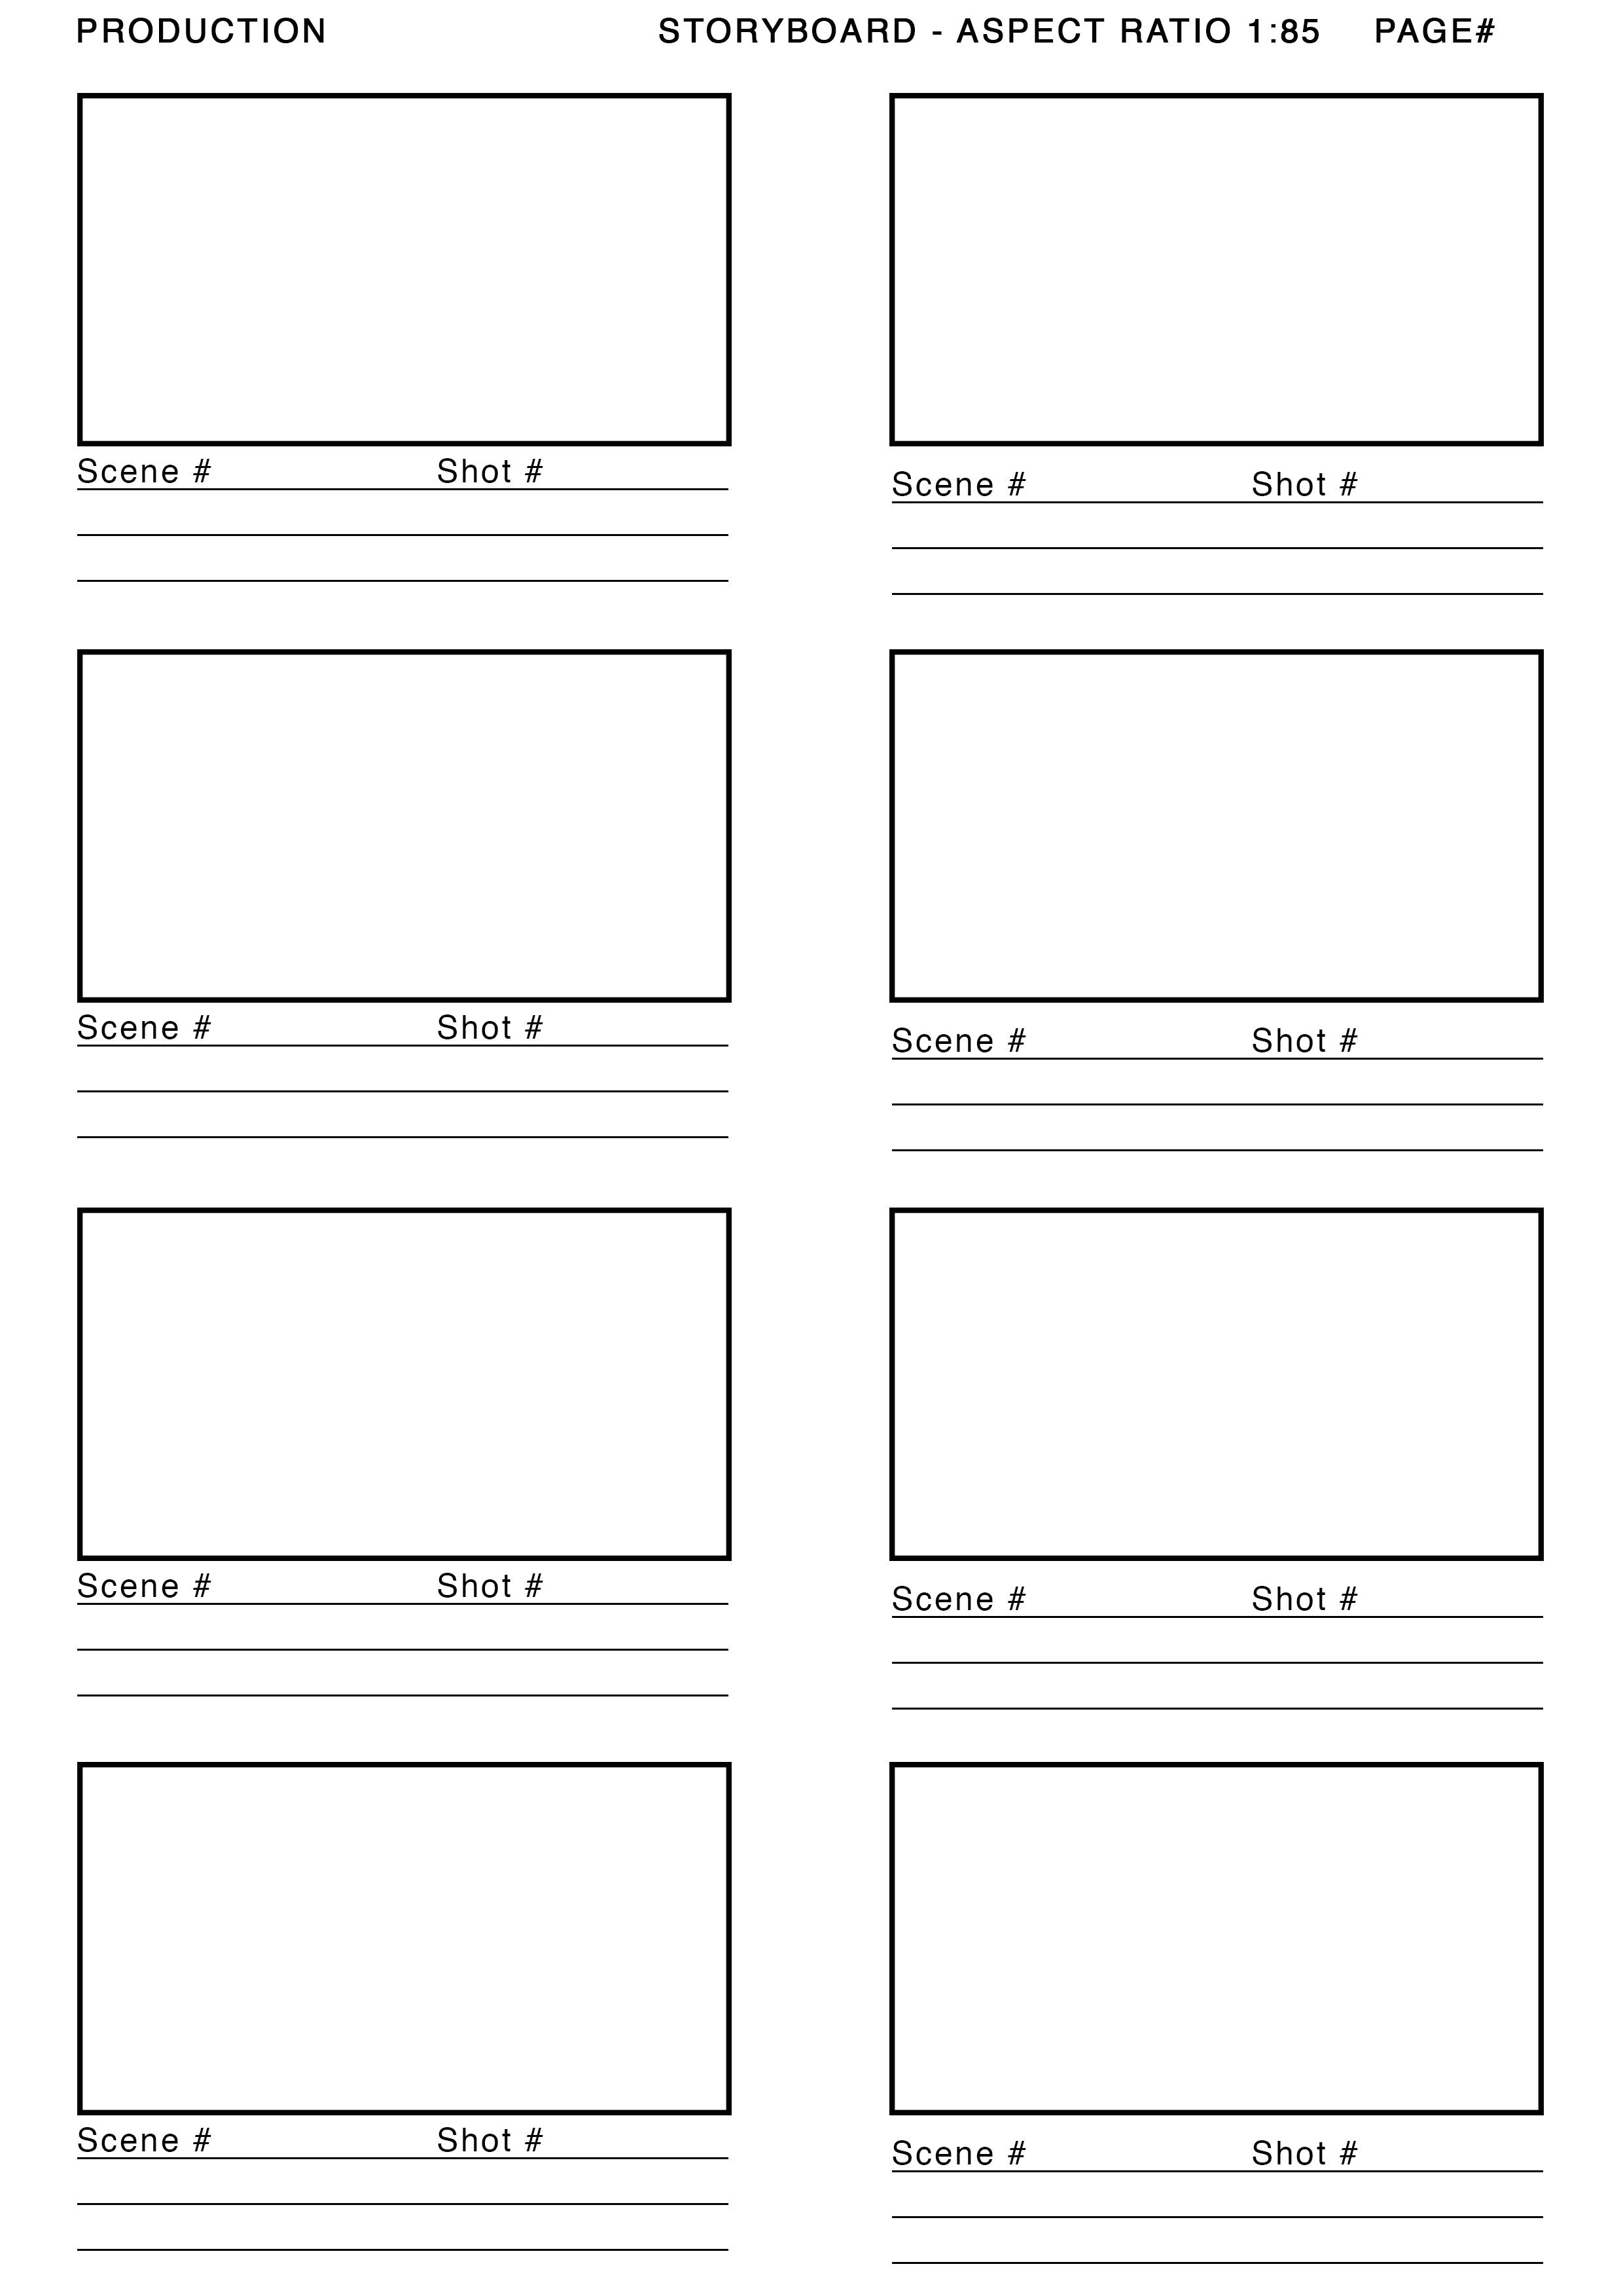 Storyboard Illustrator Template 1 85 aspect Ratio Storyboard Template Google Search